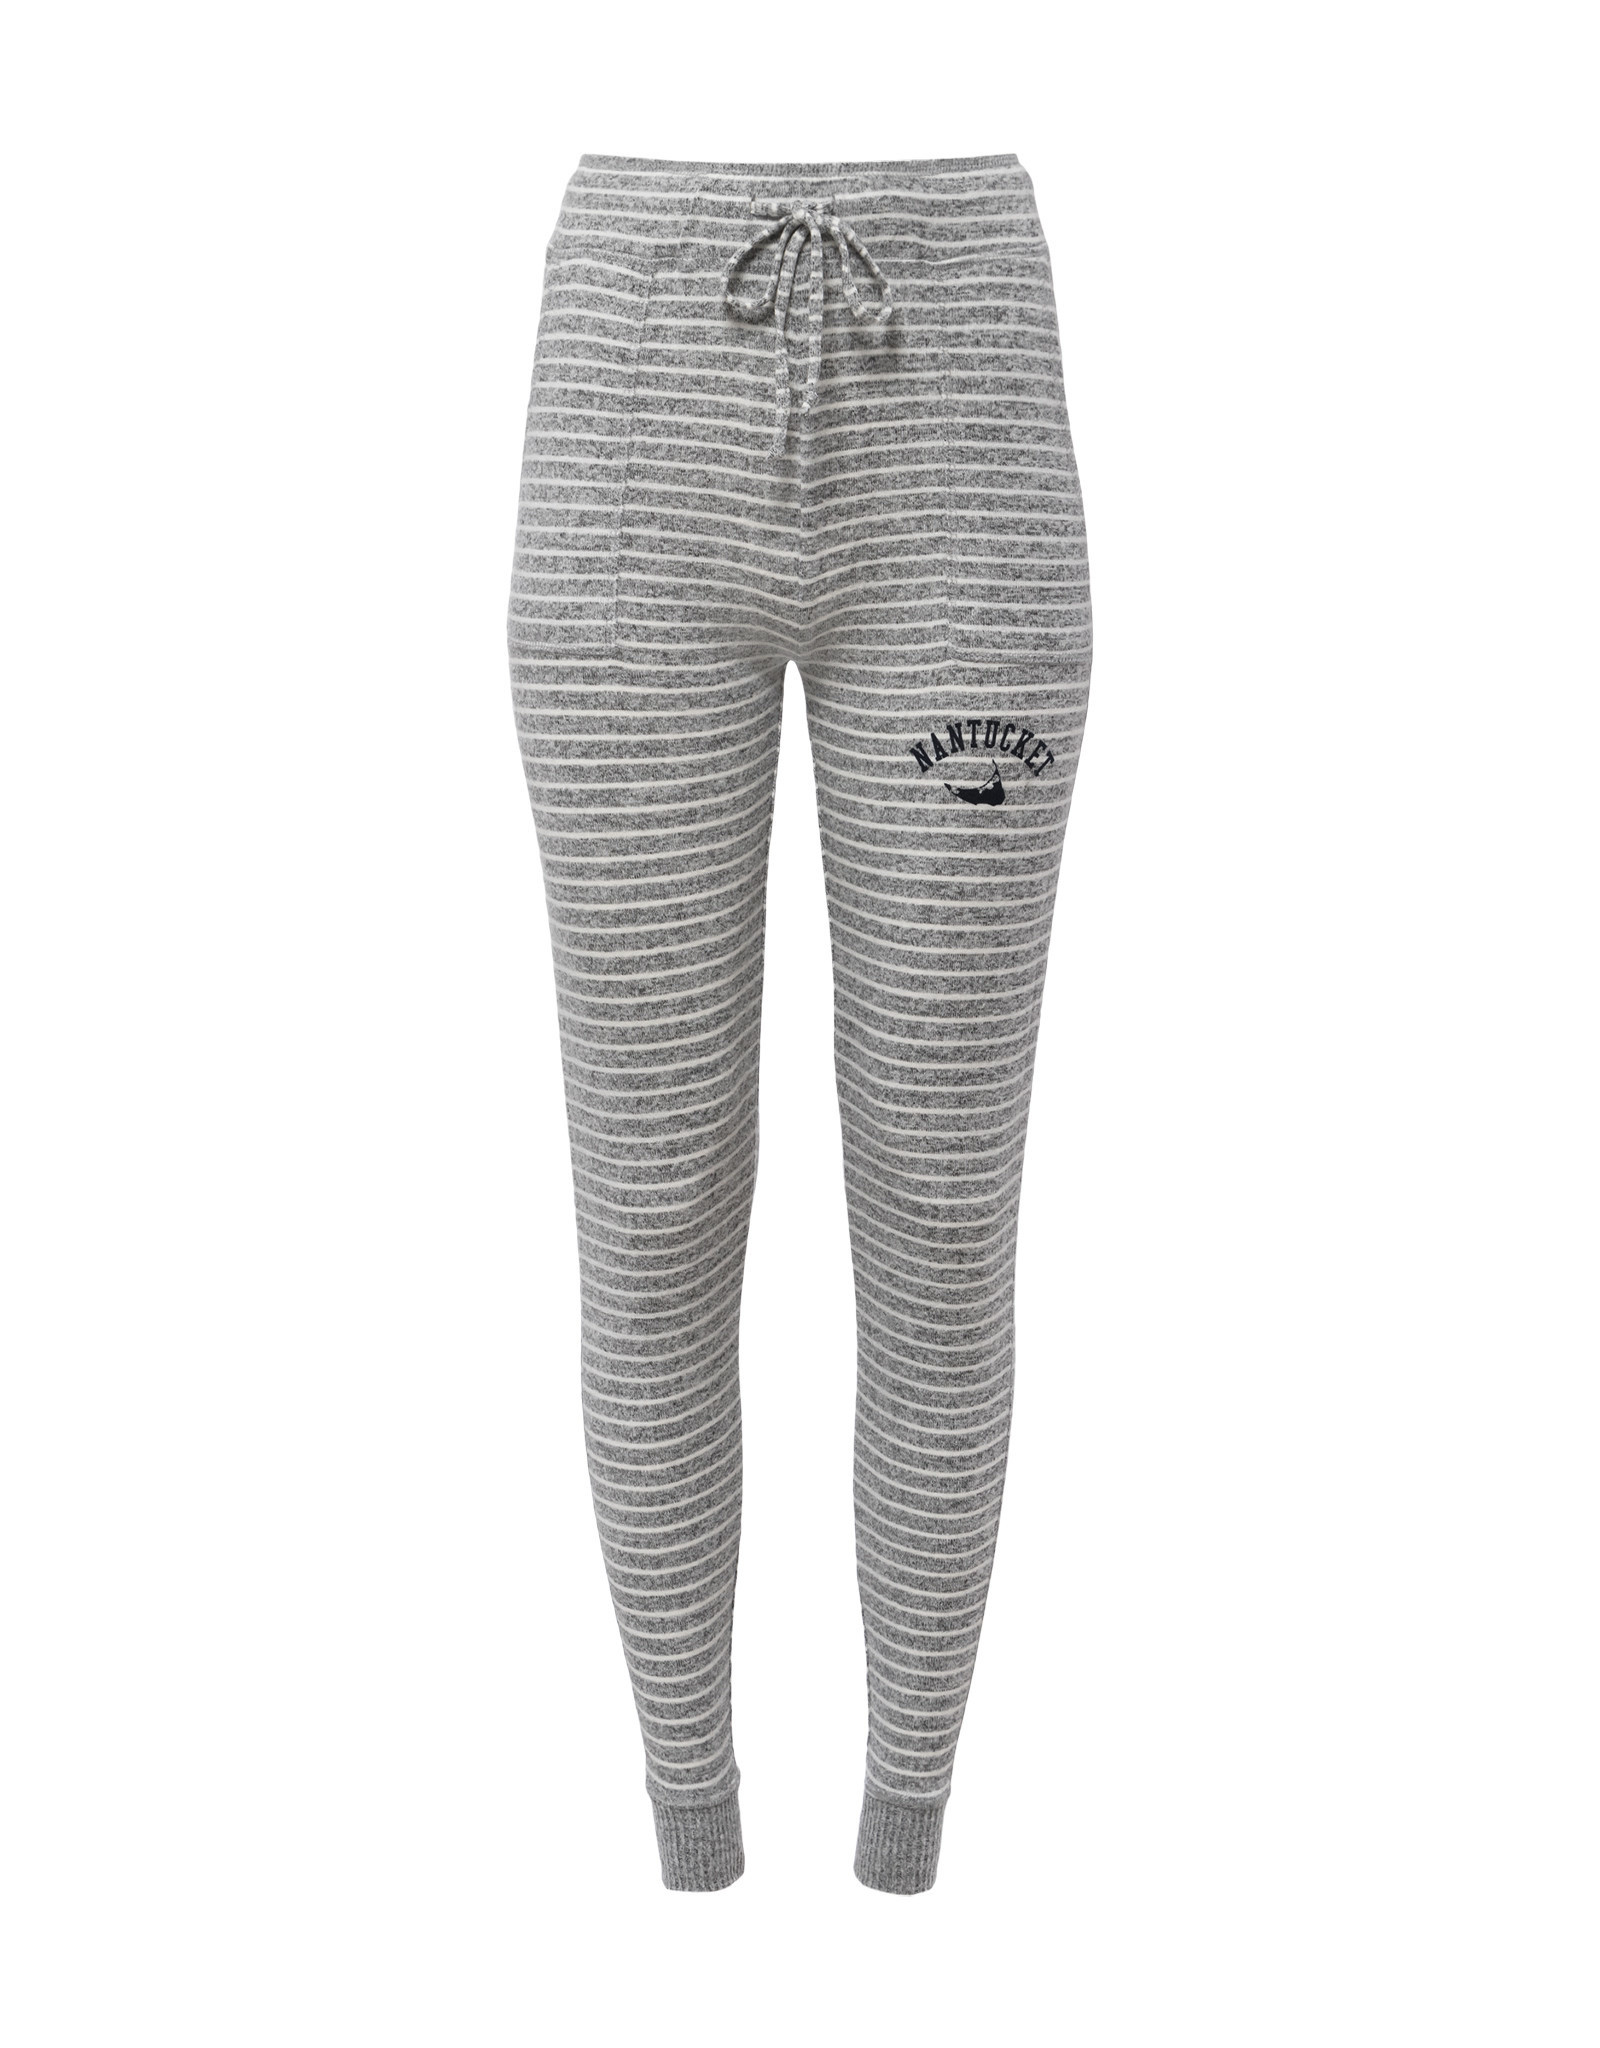 Boxercraft Boxercraft Ladies Striped Sweatpants